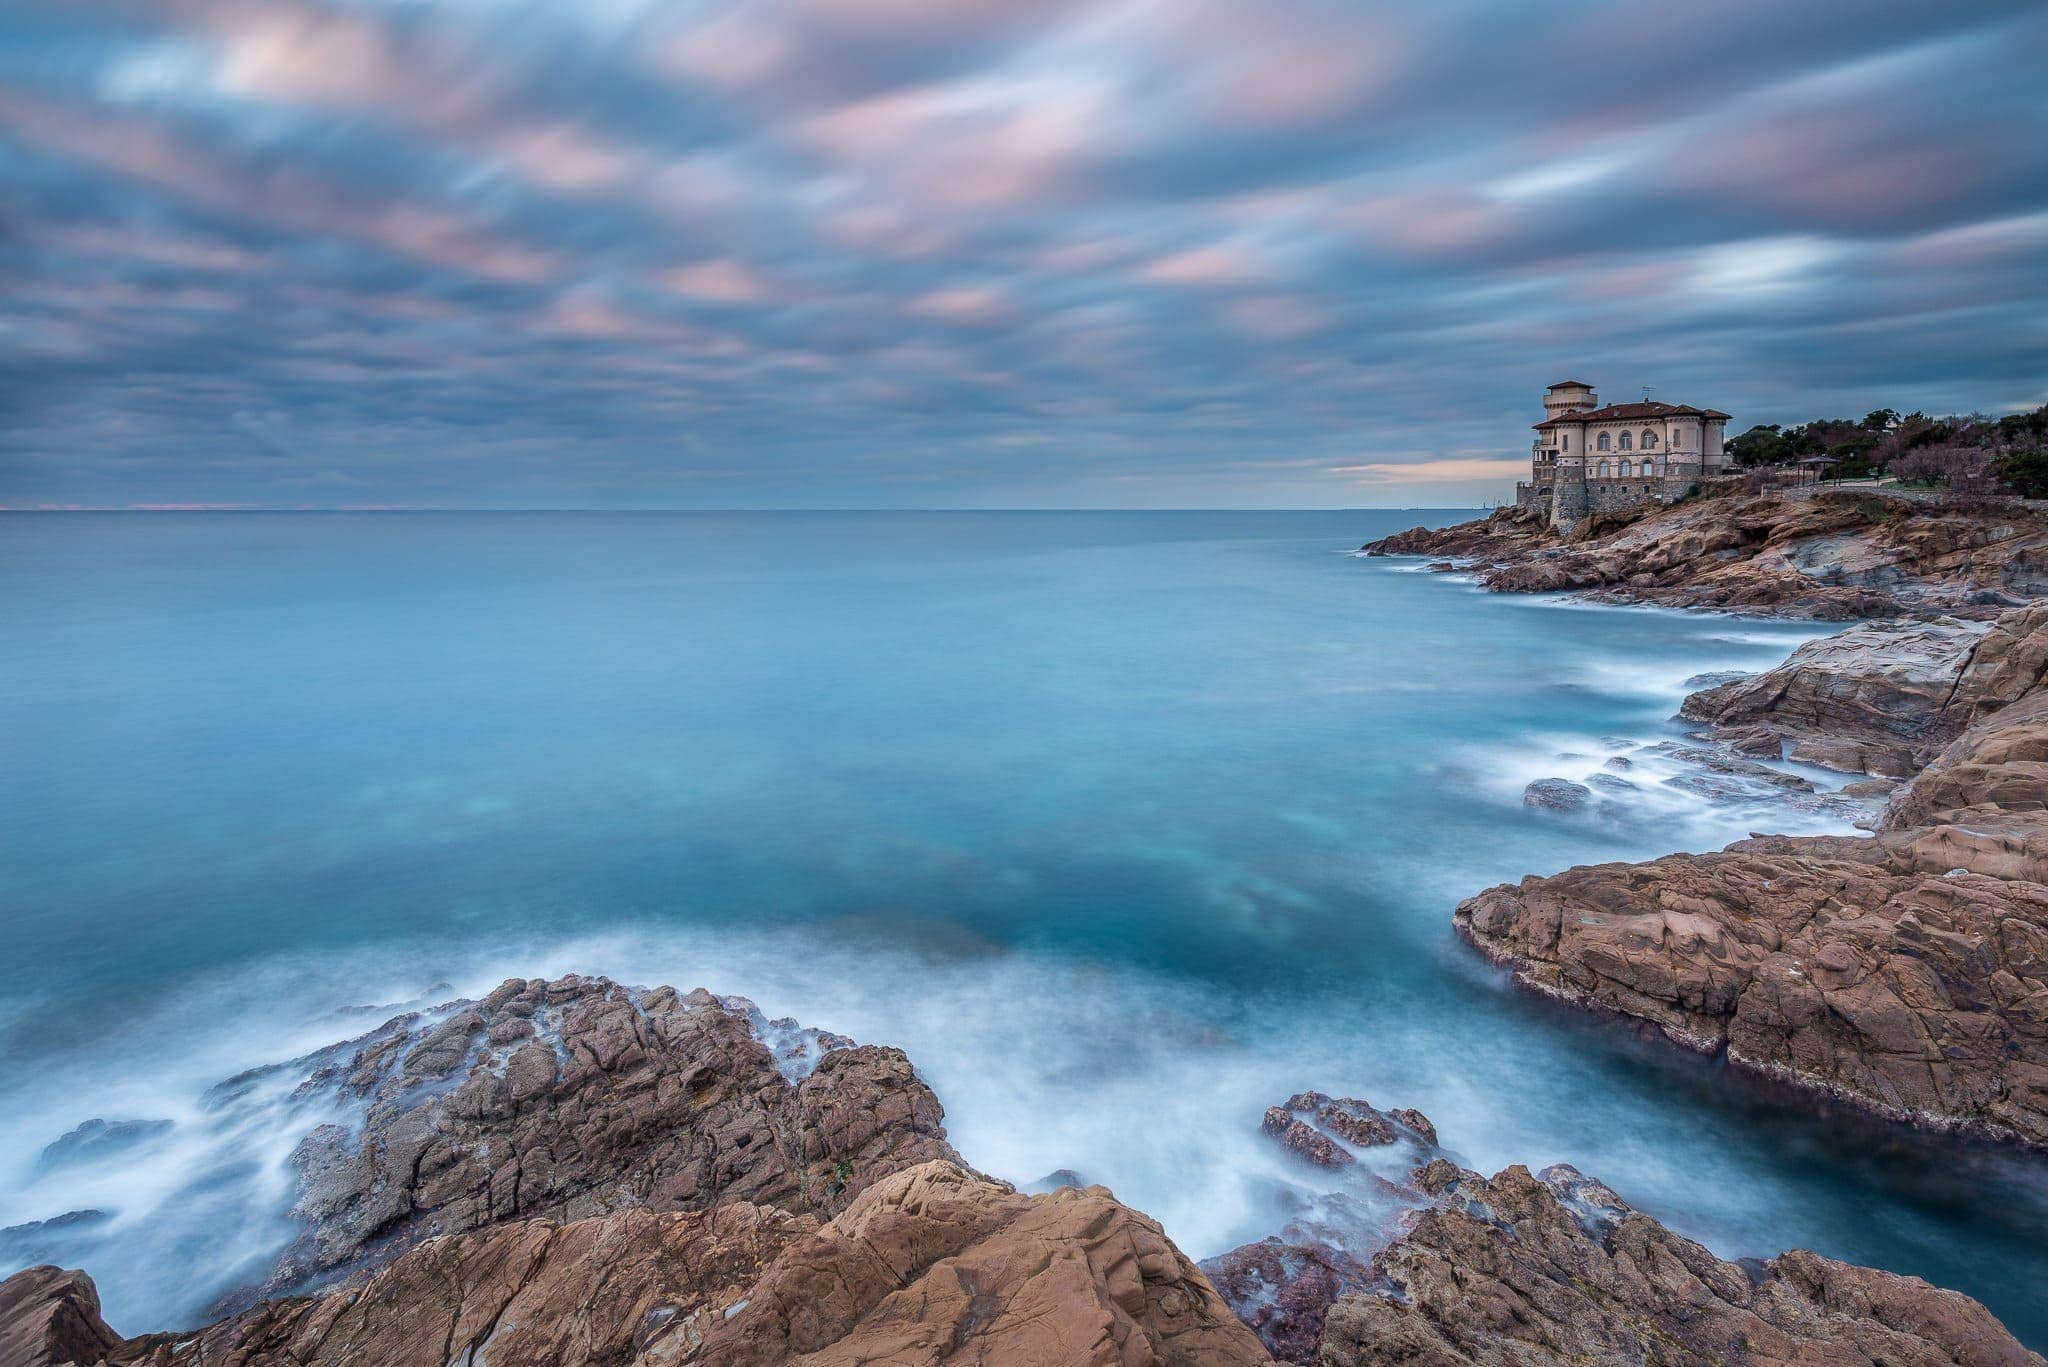 Francesco Gola Seascape Landscape Photography Tuscany Toscana Catello Castel Boccale Long Exposure